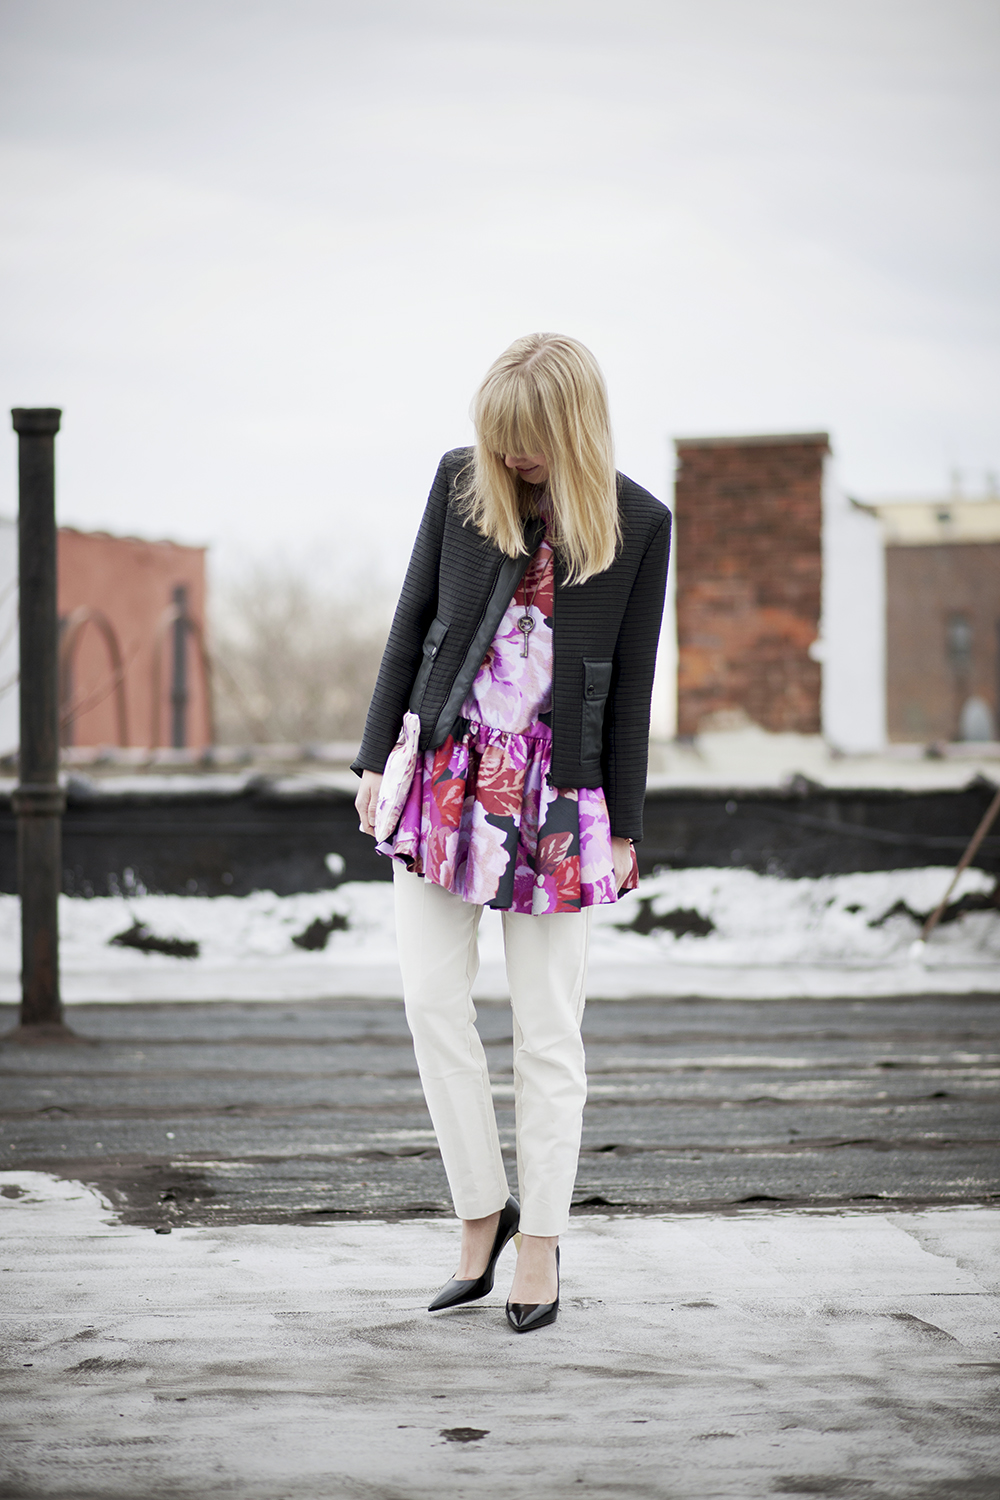 DRESS X PANTS | Just Another Fashion Blog